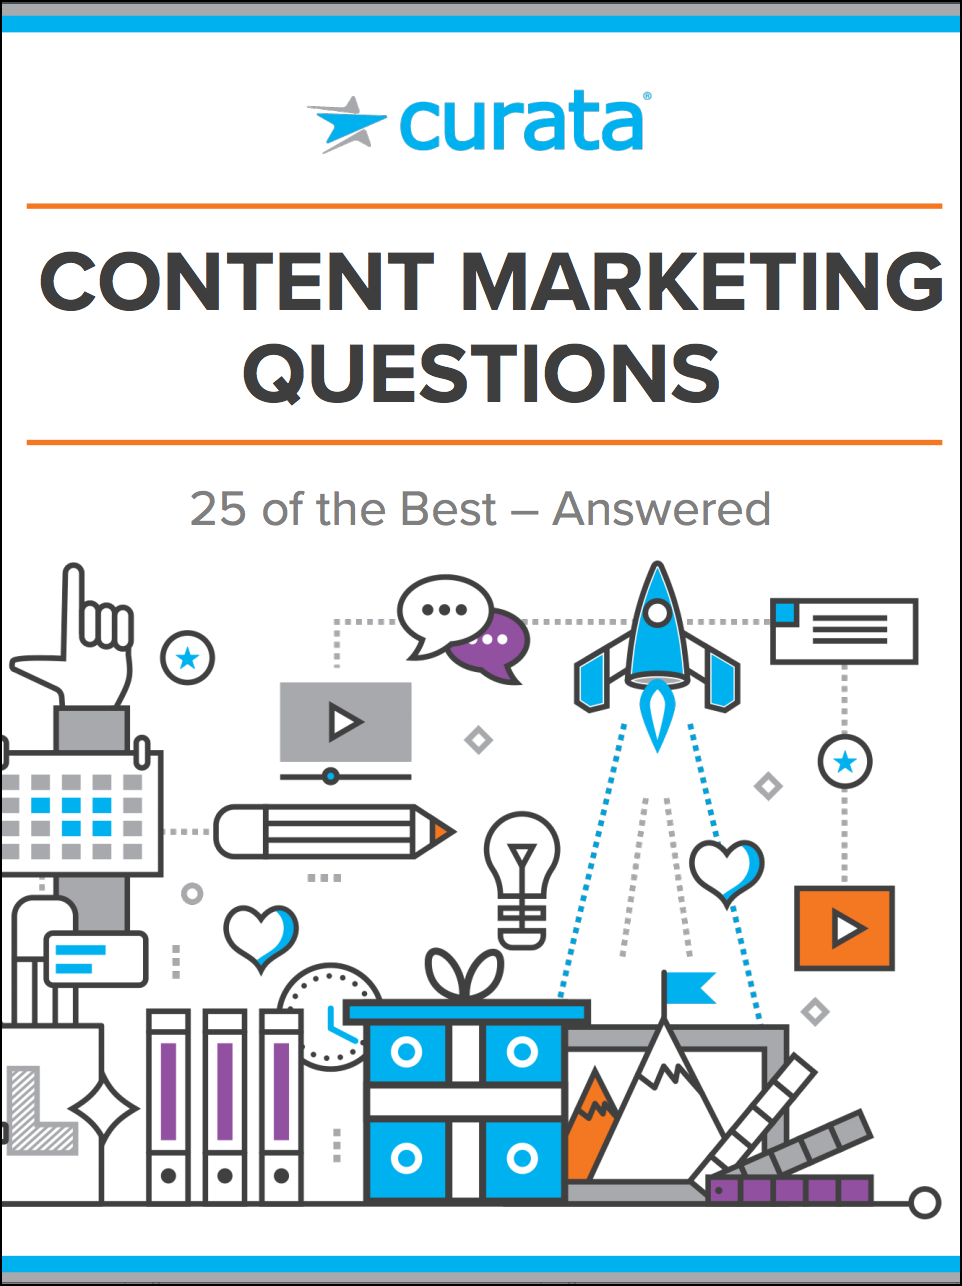 25 of The Best Content Marketing Questions Answered